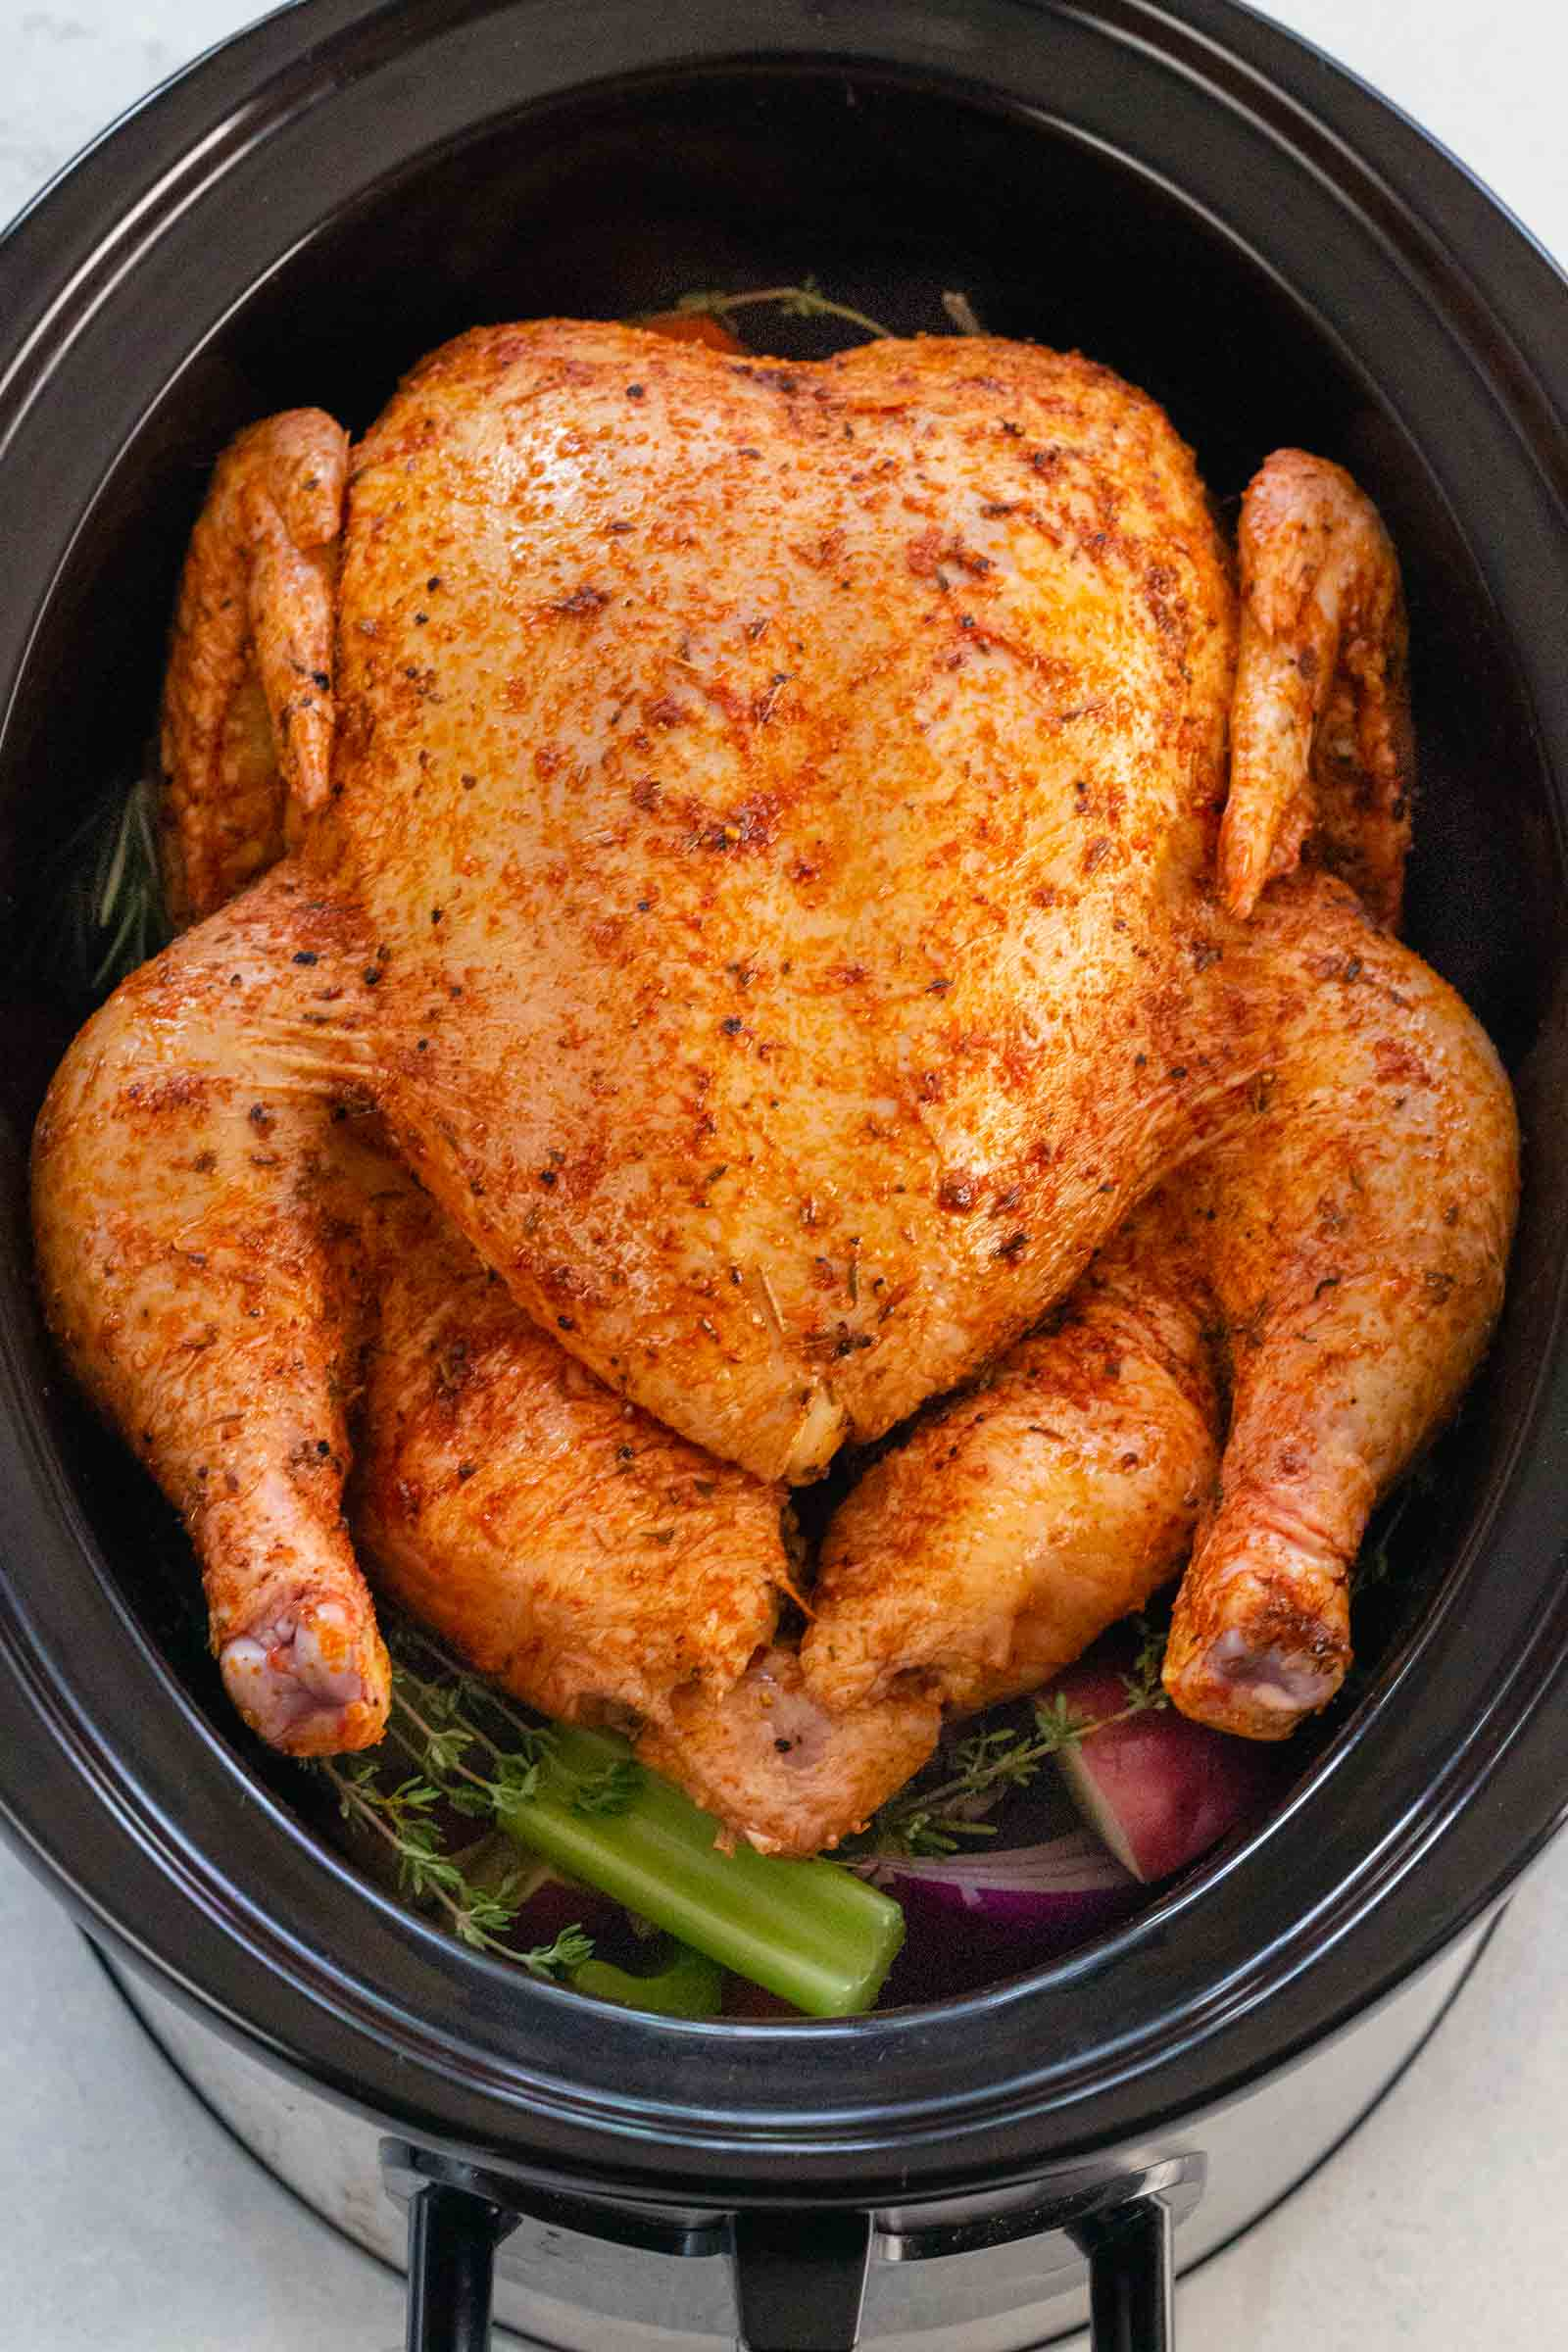 How long to cook 2 whole chicken in the oven